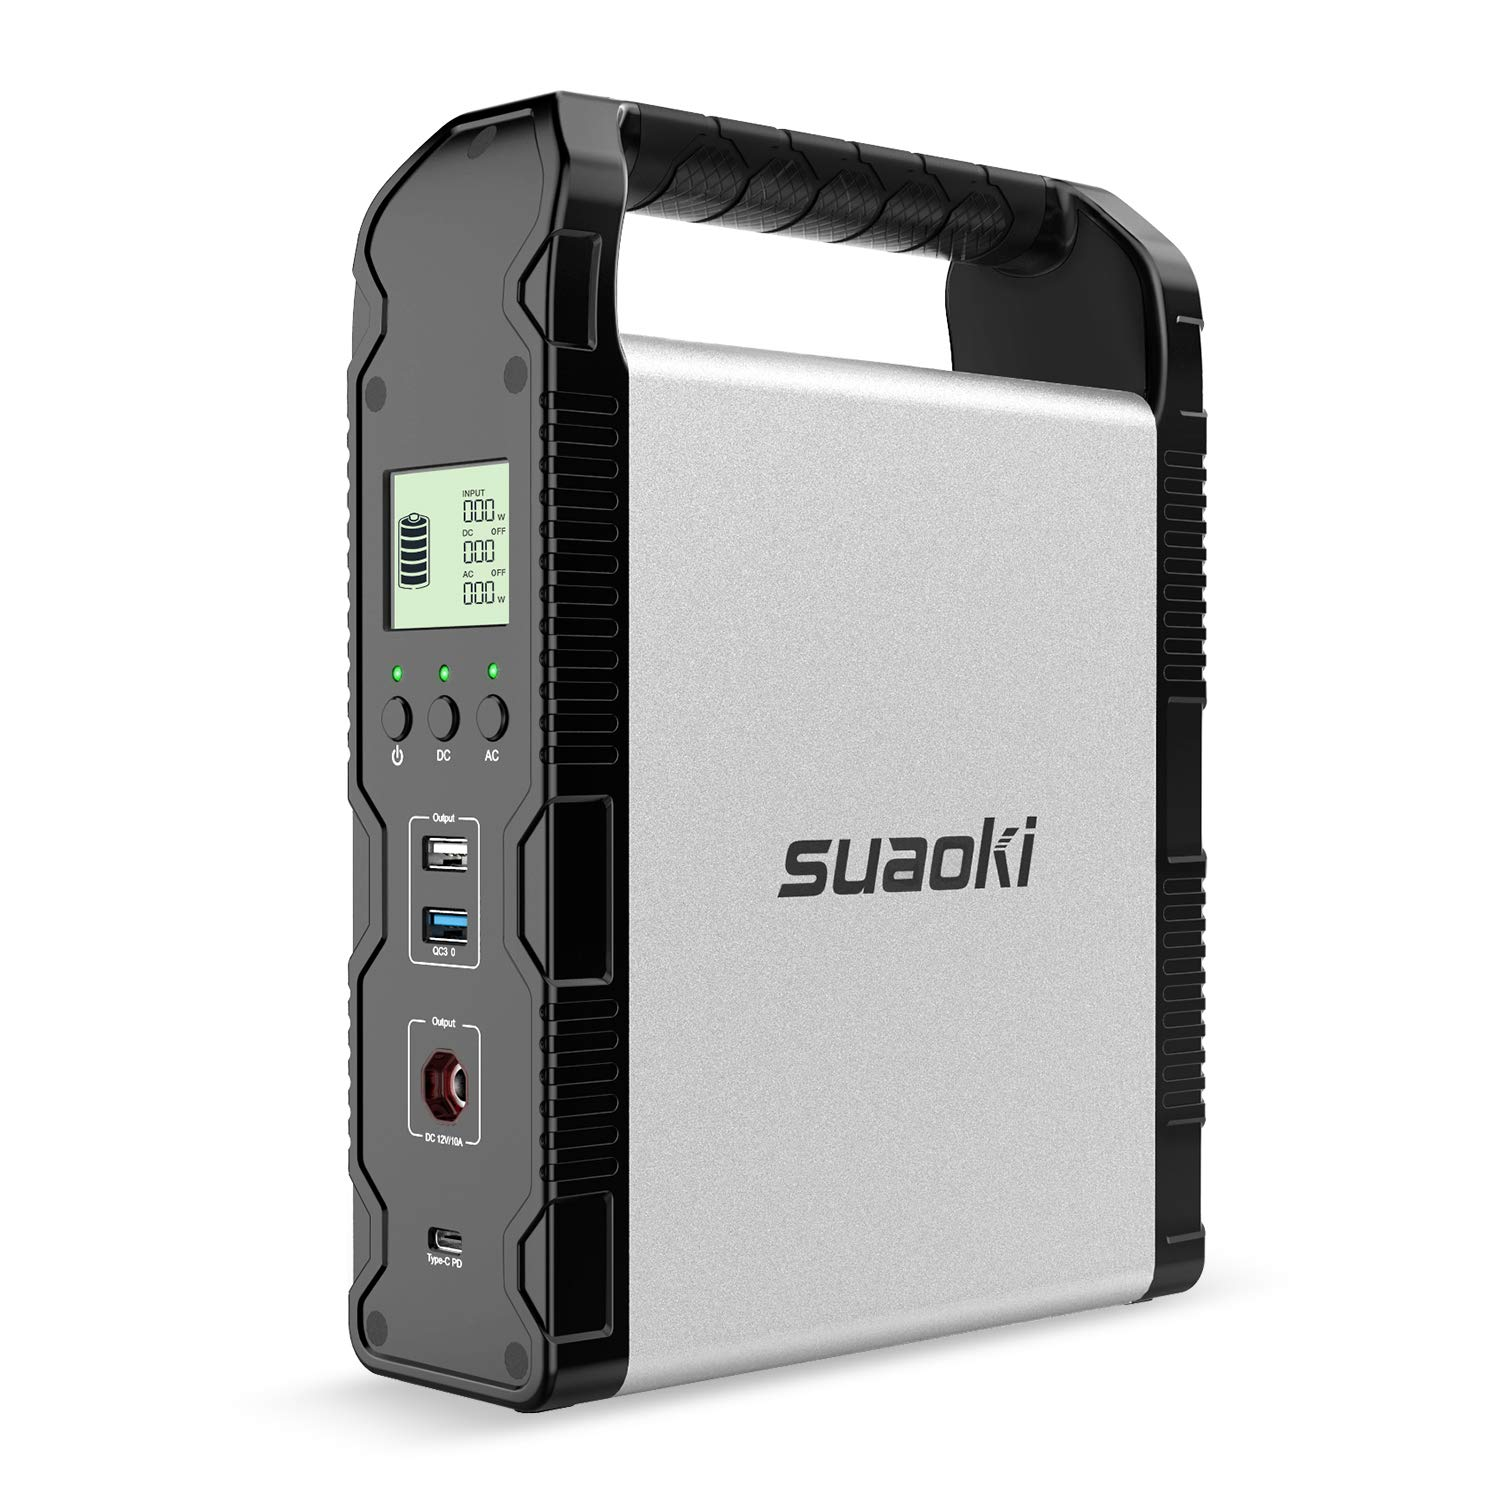 SUAOKI 200Wh Solar Power Station, S200 Portable Generator Lithium Battery Backup Pack with 120W Pure Sine Wave AC Outlet, 120W DC, Quick Charge 3.0, 45W Power Delivery USB C for Fishing Camping CPAP by SUAOKI